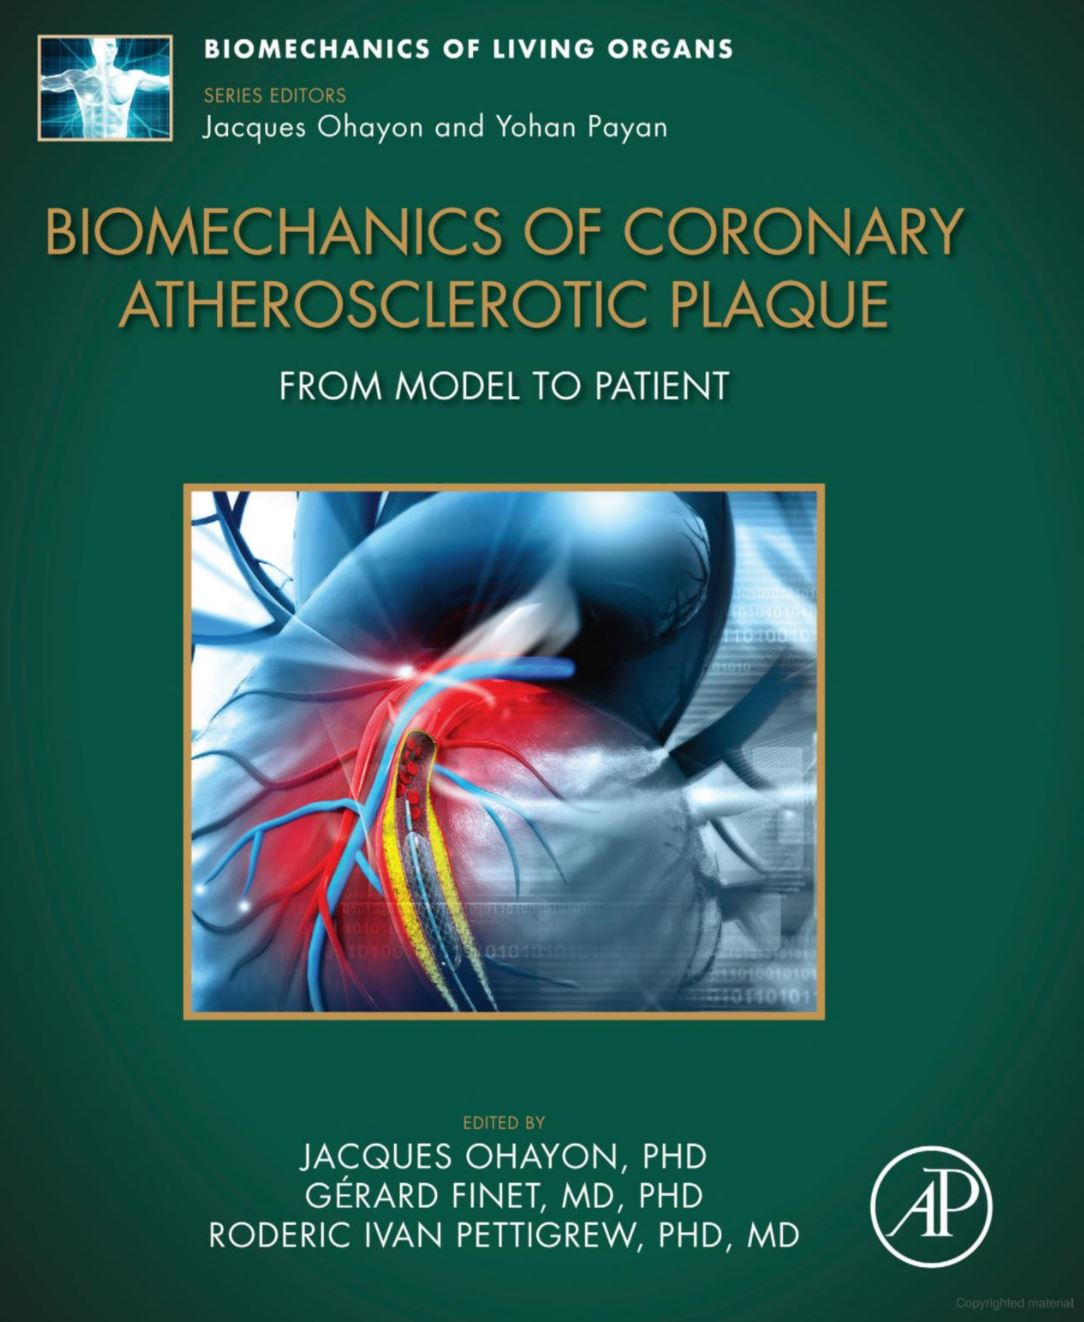 """""""Biomechanics of Coronary Atherosclerotic Plaque: From Model to Patient"""